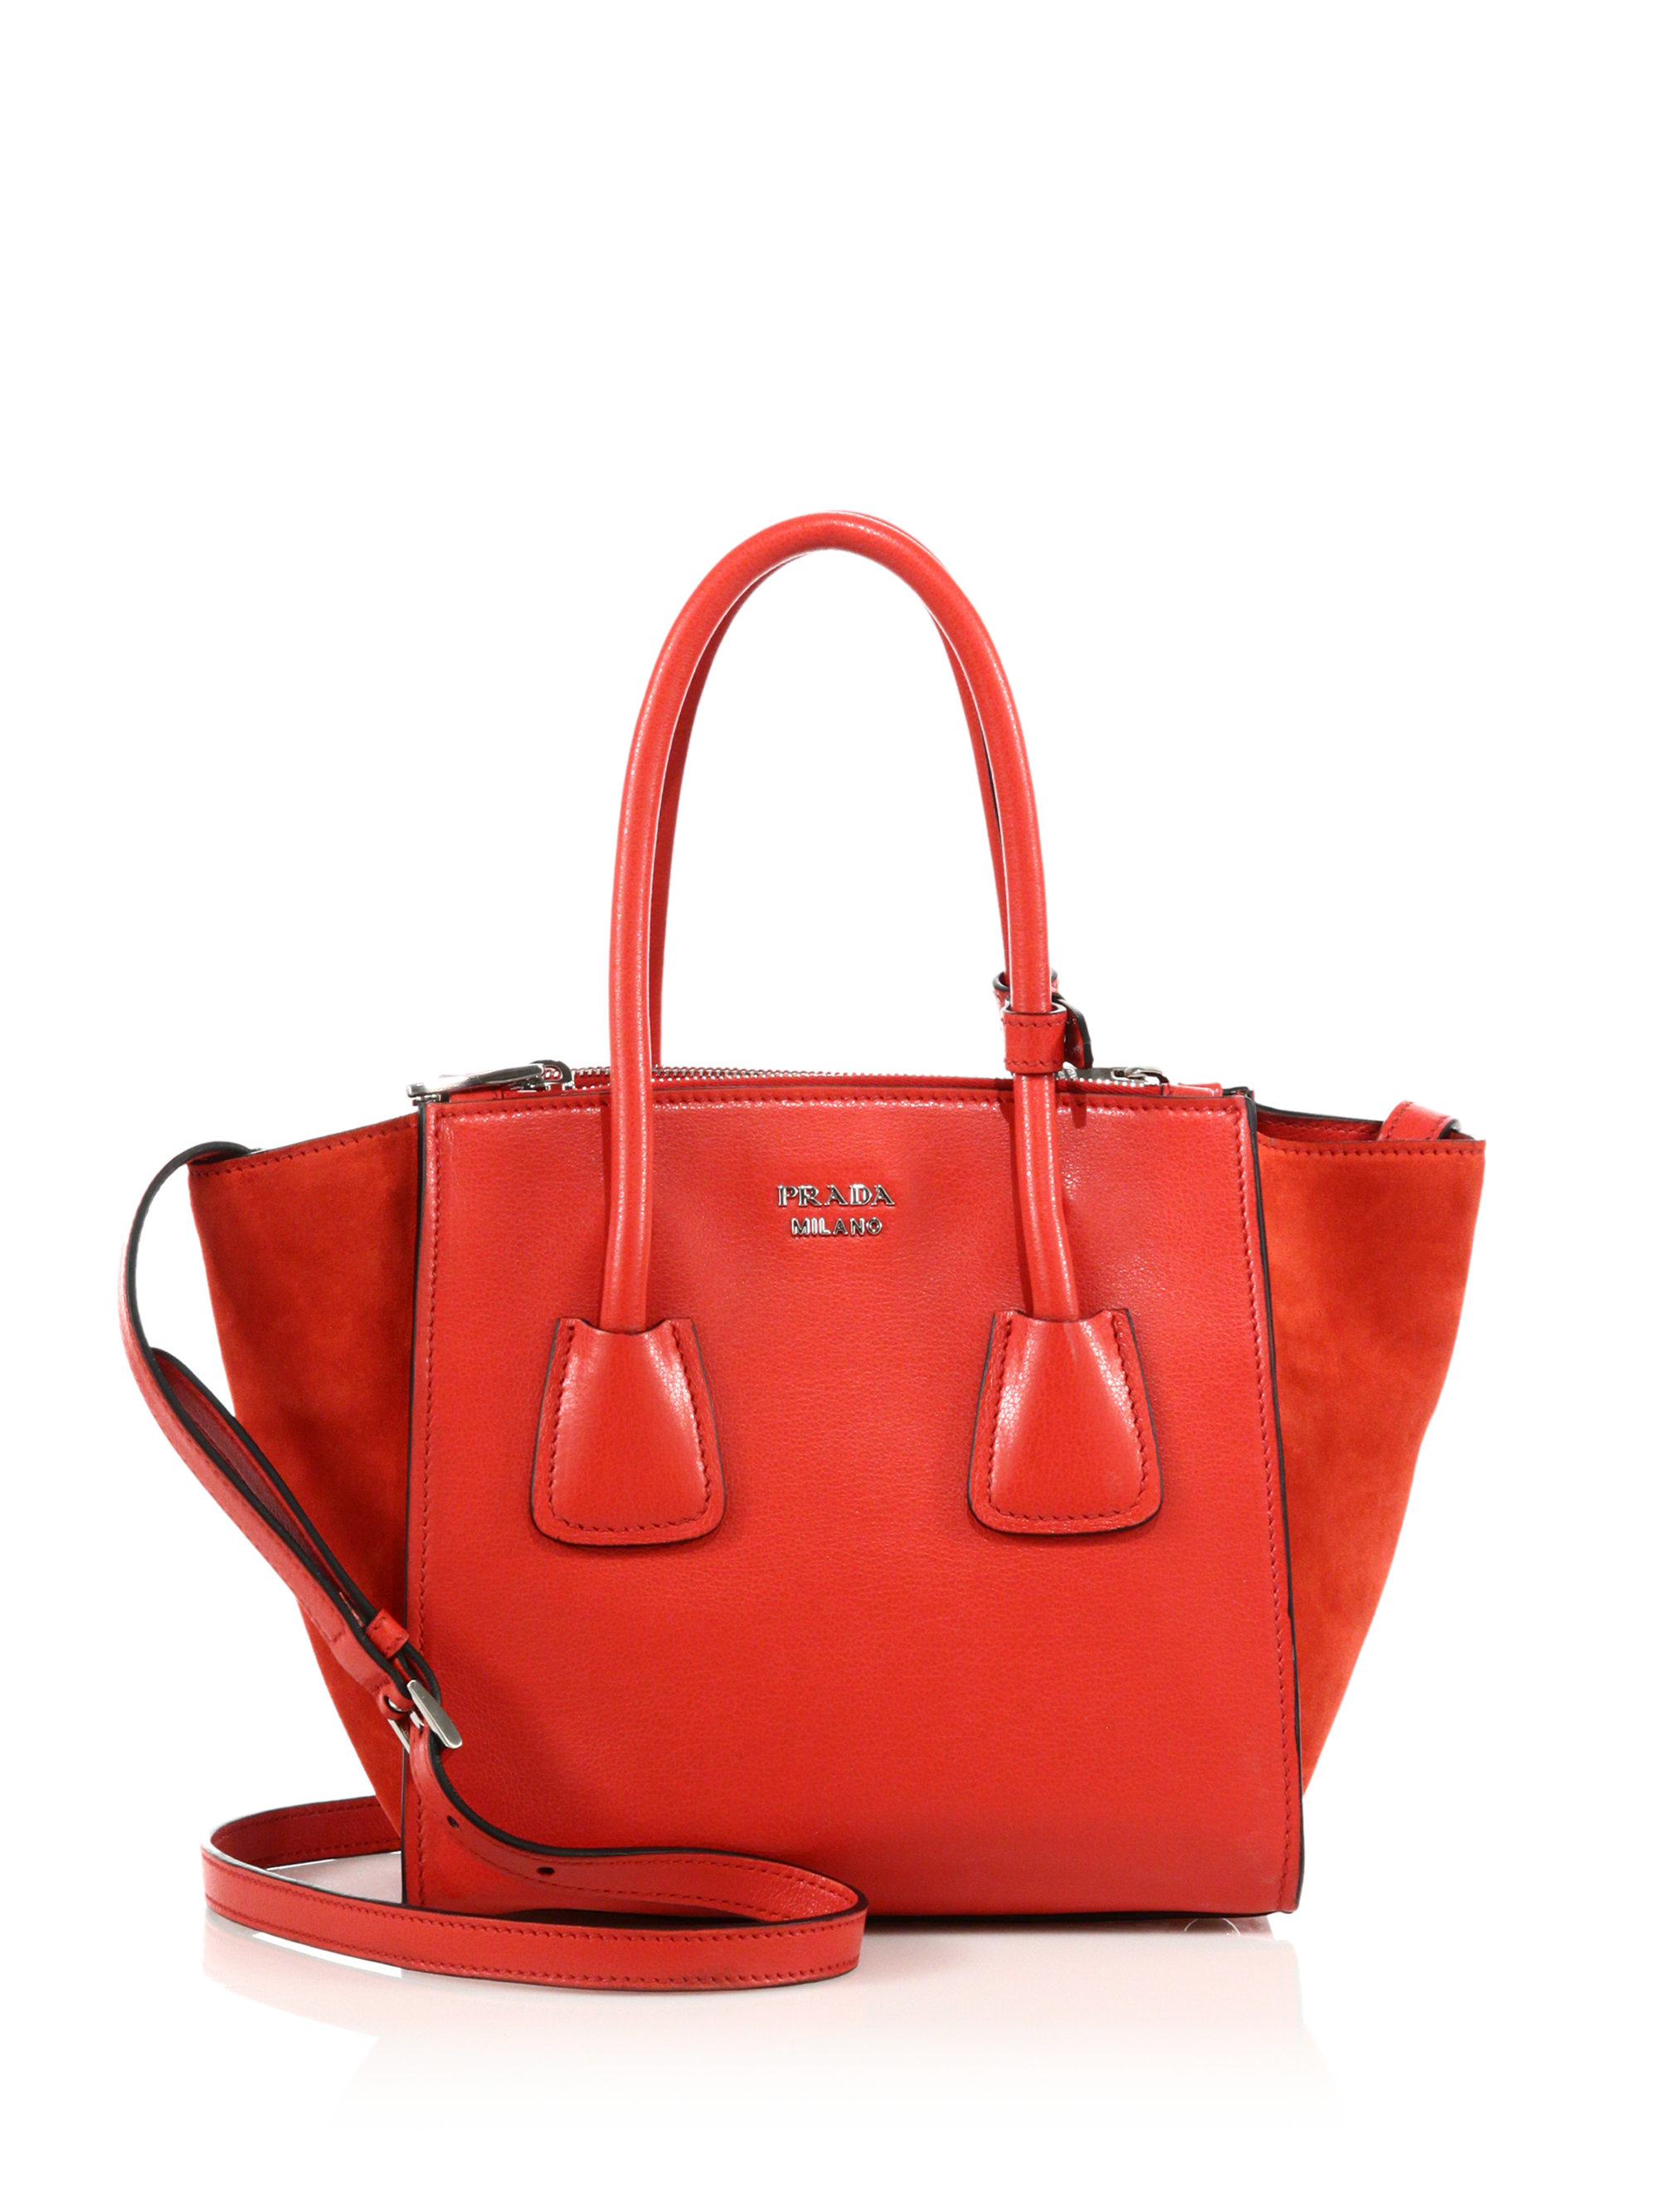 b8b9ed67dc1a ... new style lyst prada glace calf suede mini twin pocket tote in red  71149 d703c